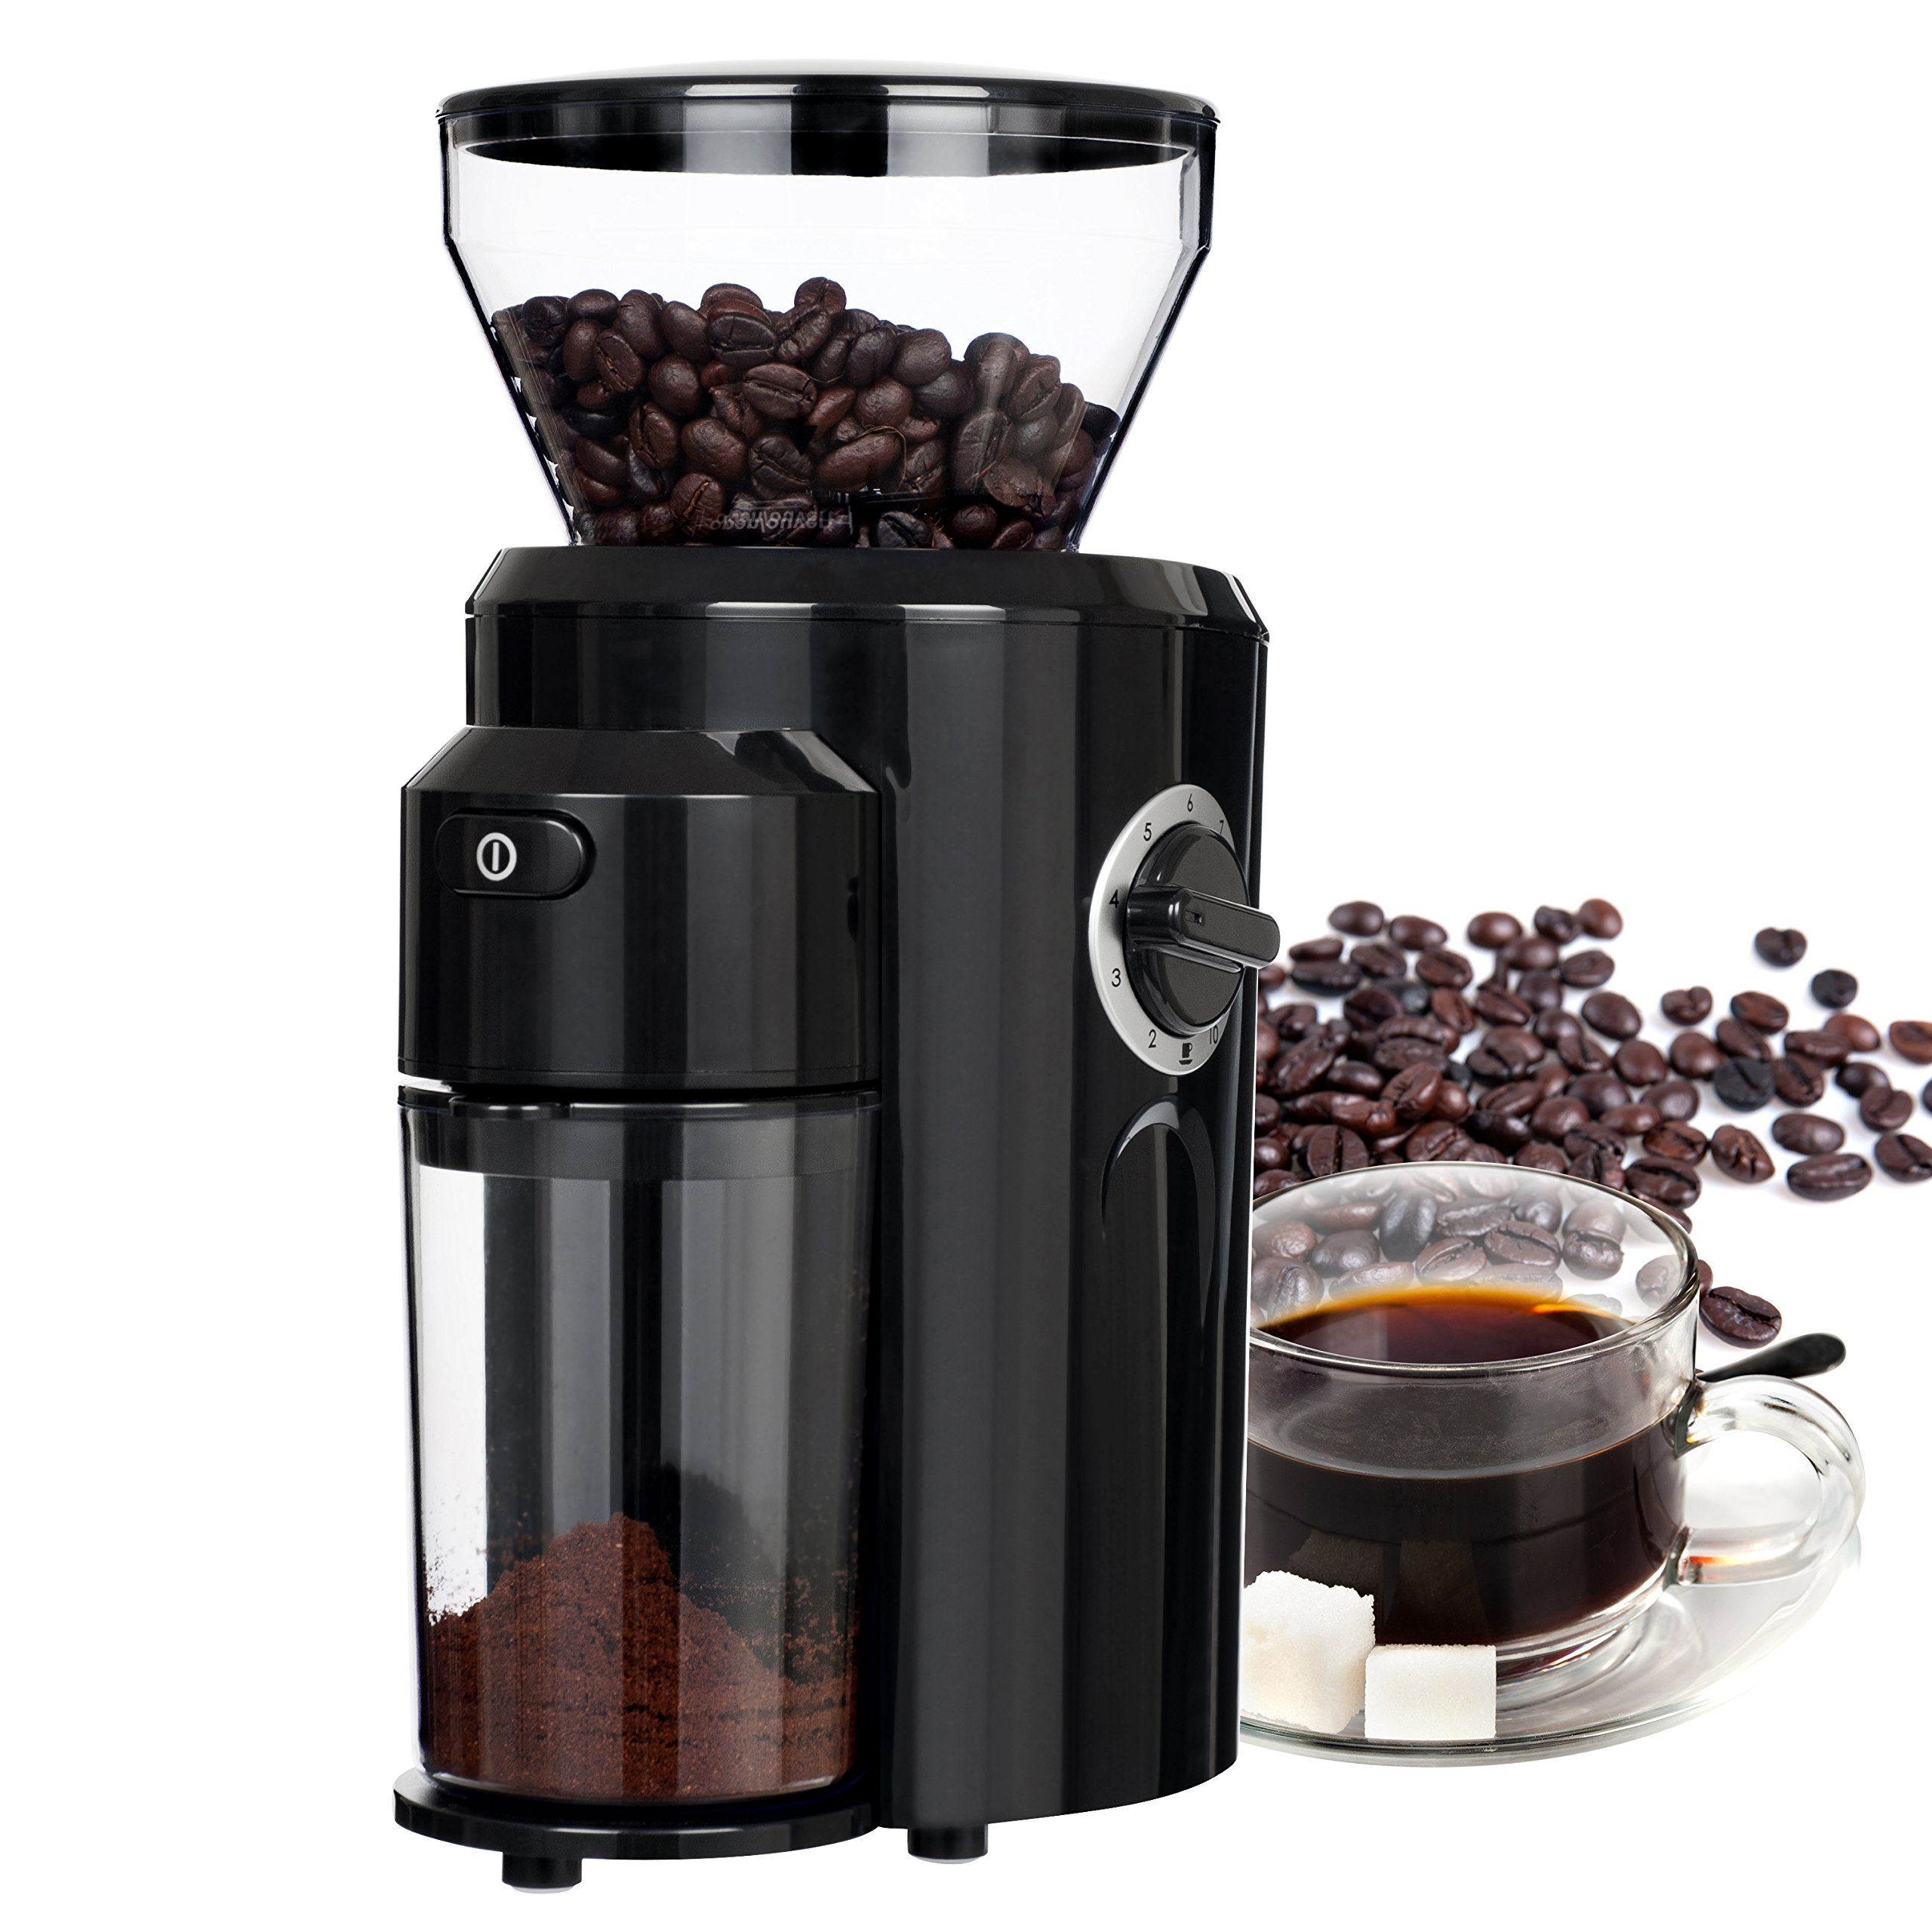 Secura Automatic Conical Burr Coffee Grinder CBG-018 by Secura